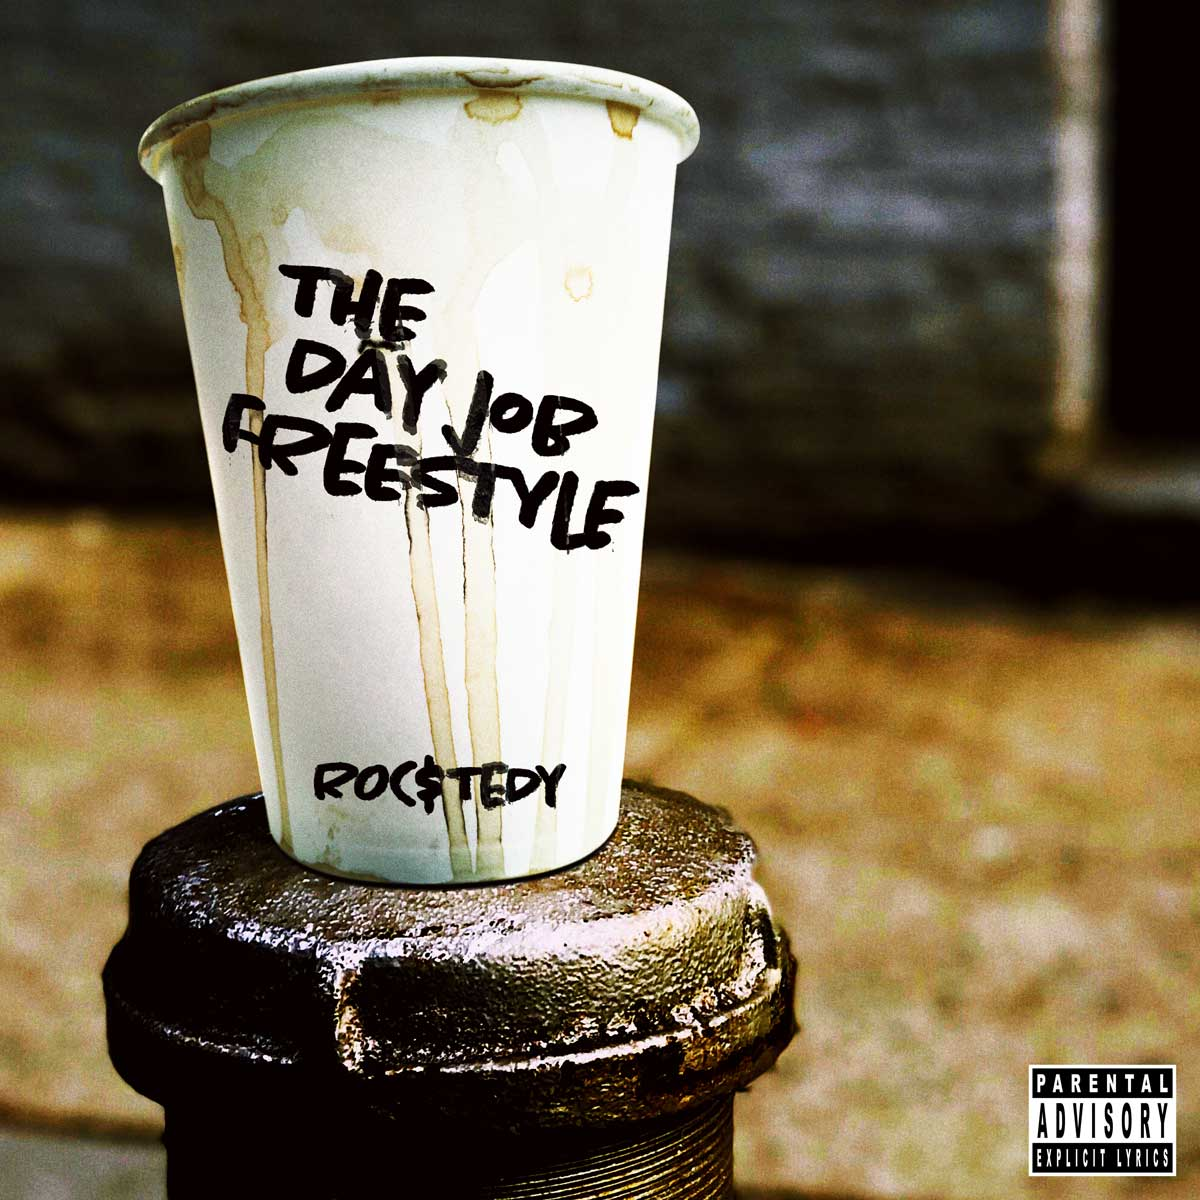 Roc$tedy - The Day Job Freestyle